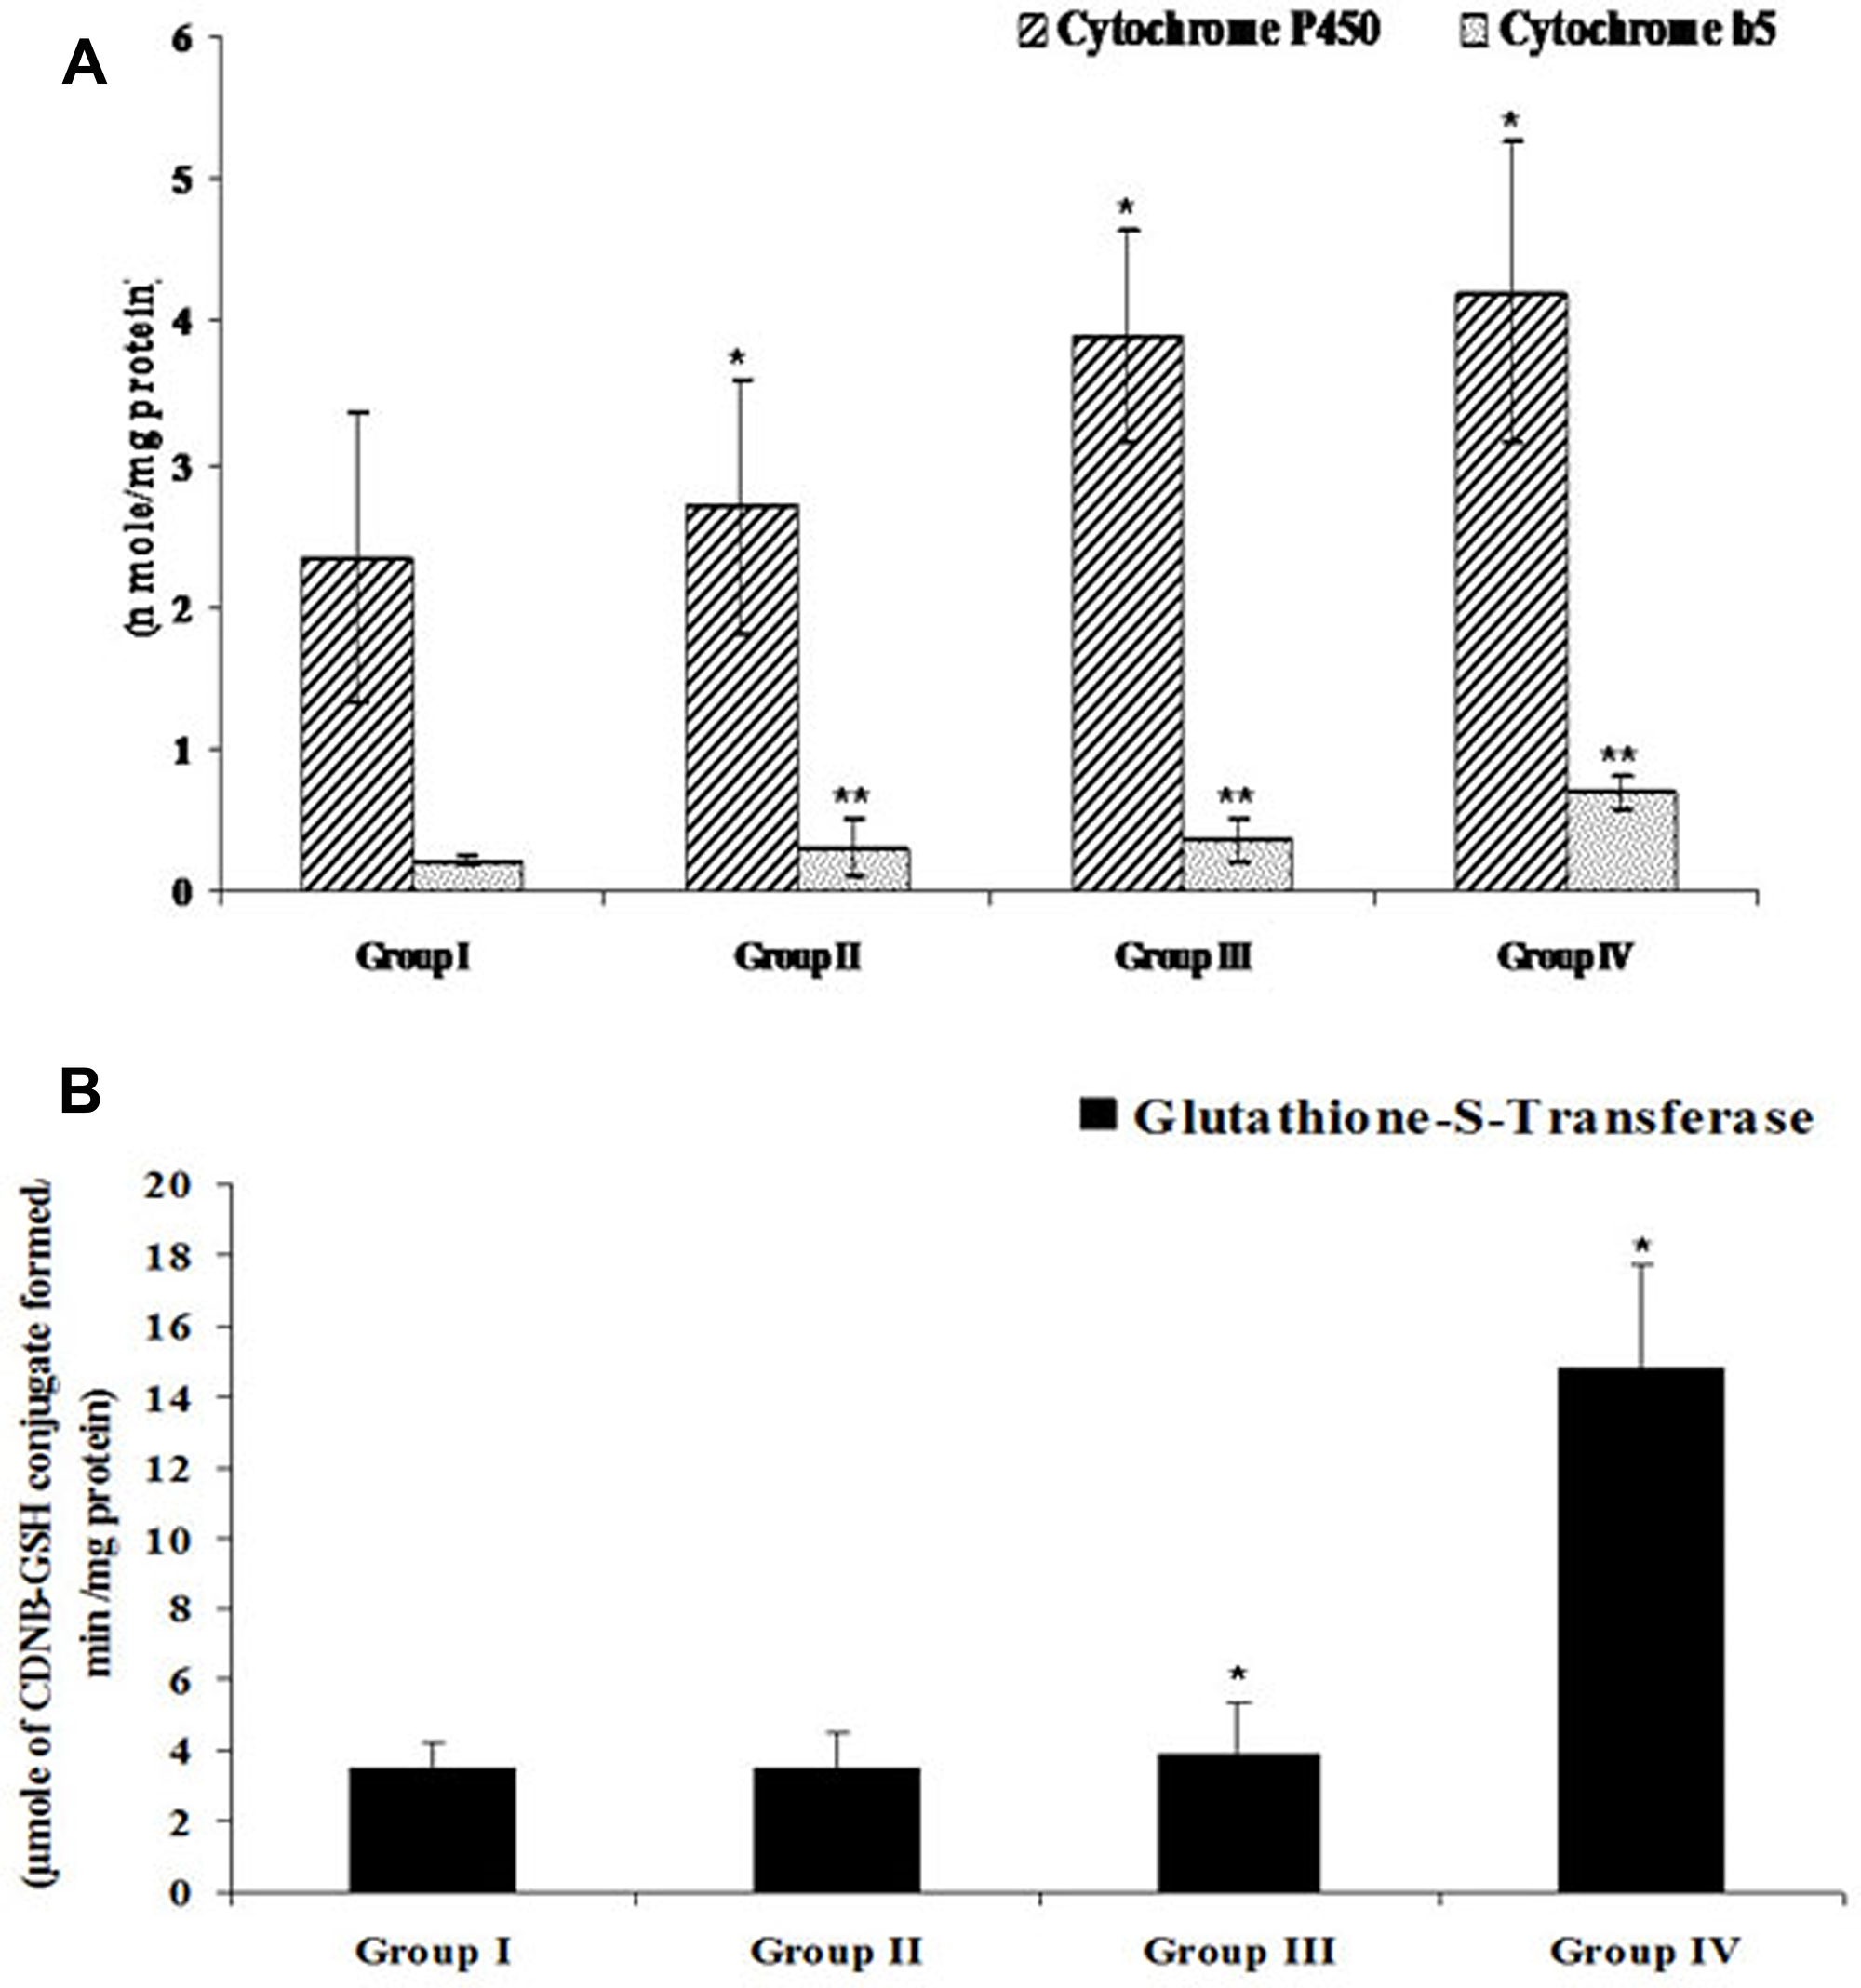 Efficacy of FEO on drug metabolizing enzymes of acetaminophen induced hepatic injured mice: Values are expressed as mean ± SD (n = 8) animals.